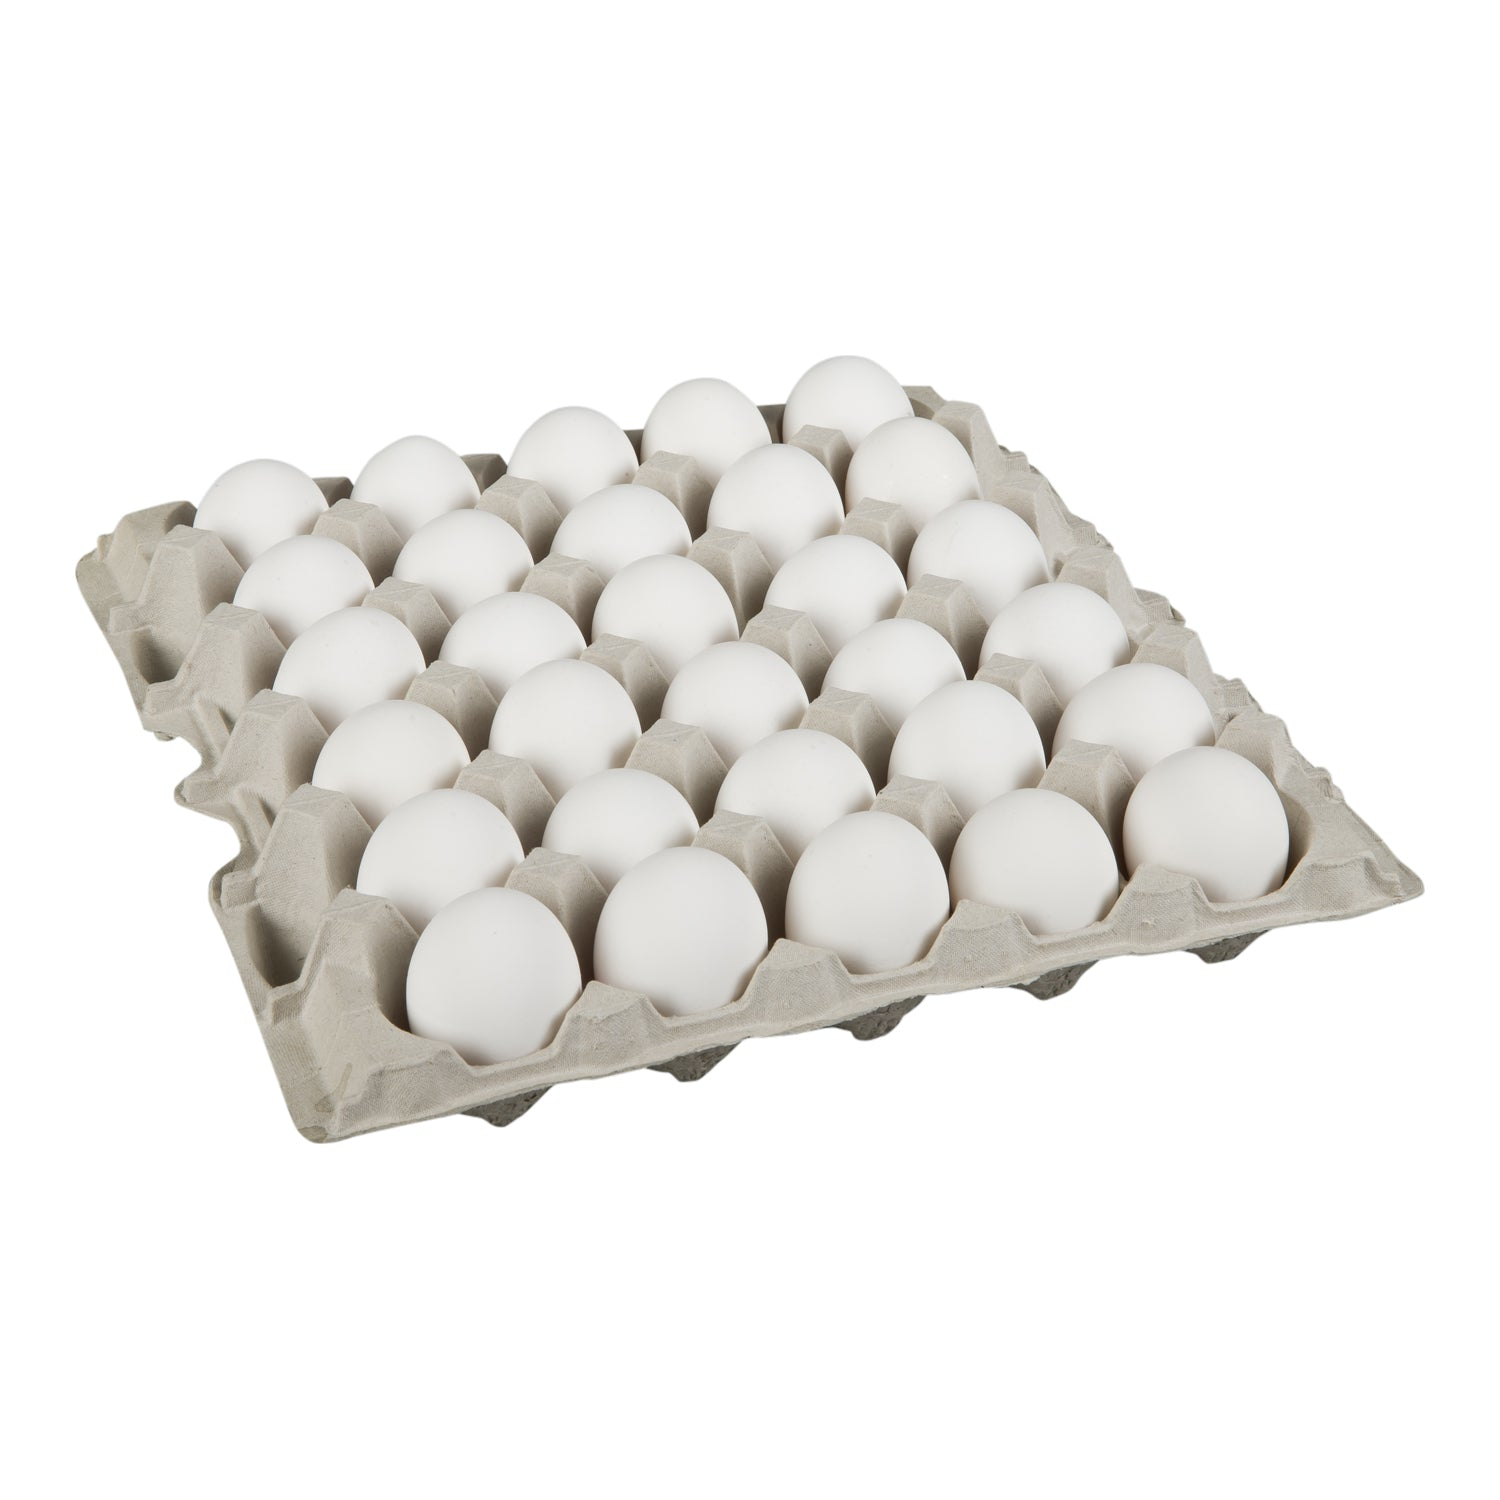 Wholesome Farms Oeufs Blancs Calibre Medium Grade A Canadien - 1 Unité [$2,67/douzaine]